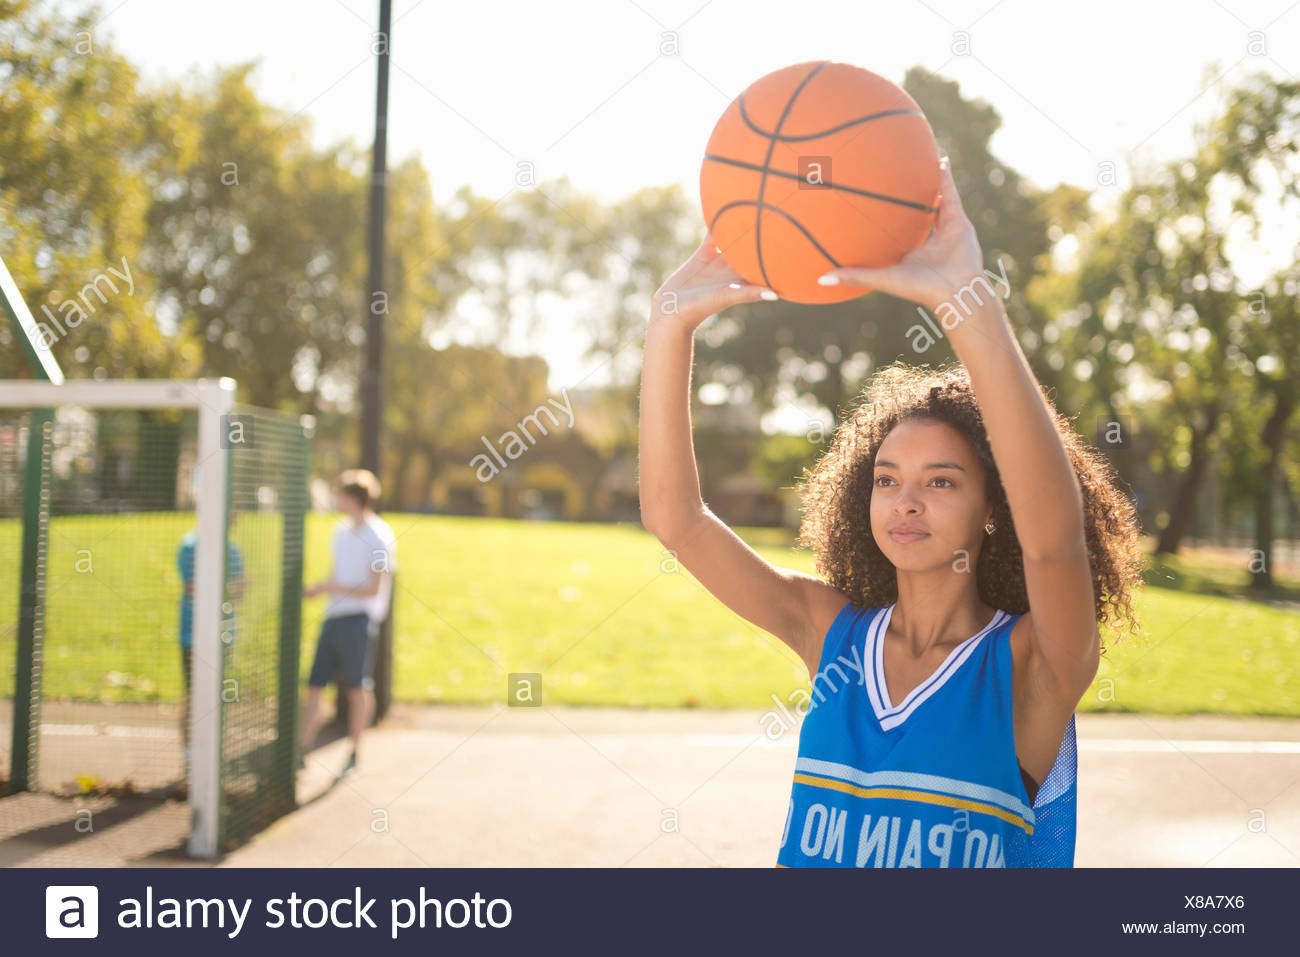 Young female basketball player holding up basketball - Stock Image